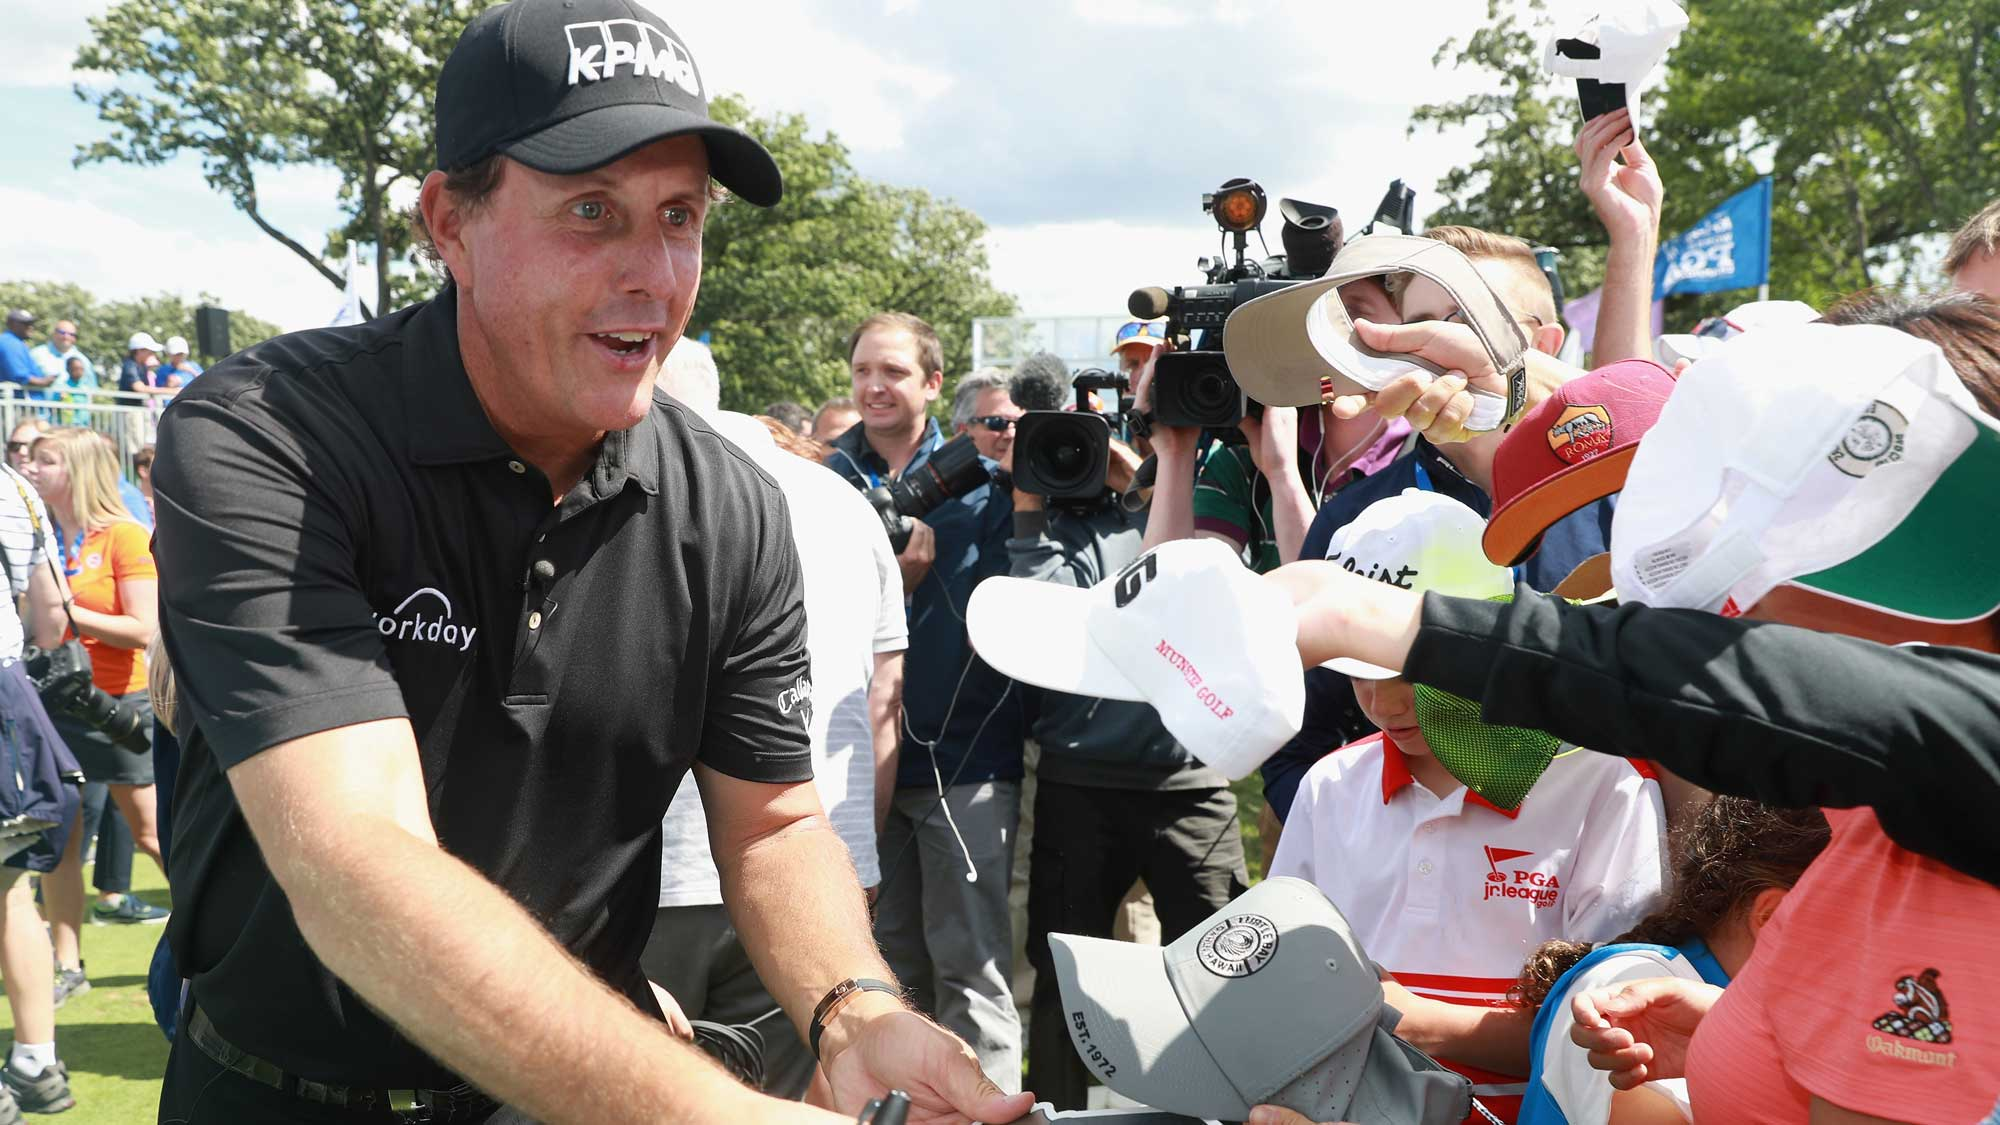 Phil Mickelson signs autographs for fans during a skills challenge prior to the start of the 2017 KPMG Women's PGA Championship